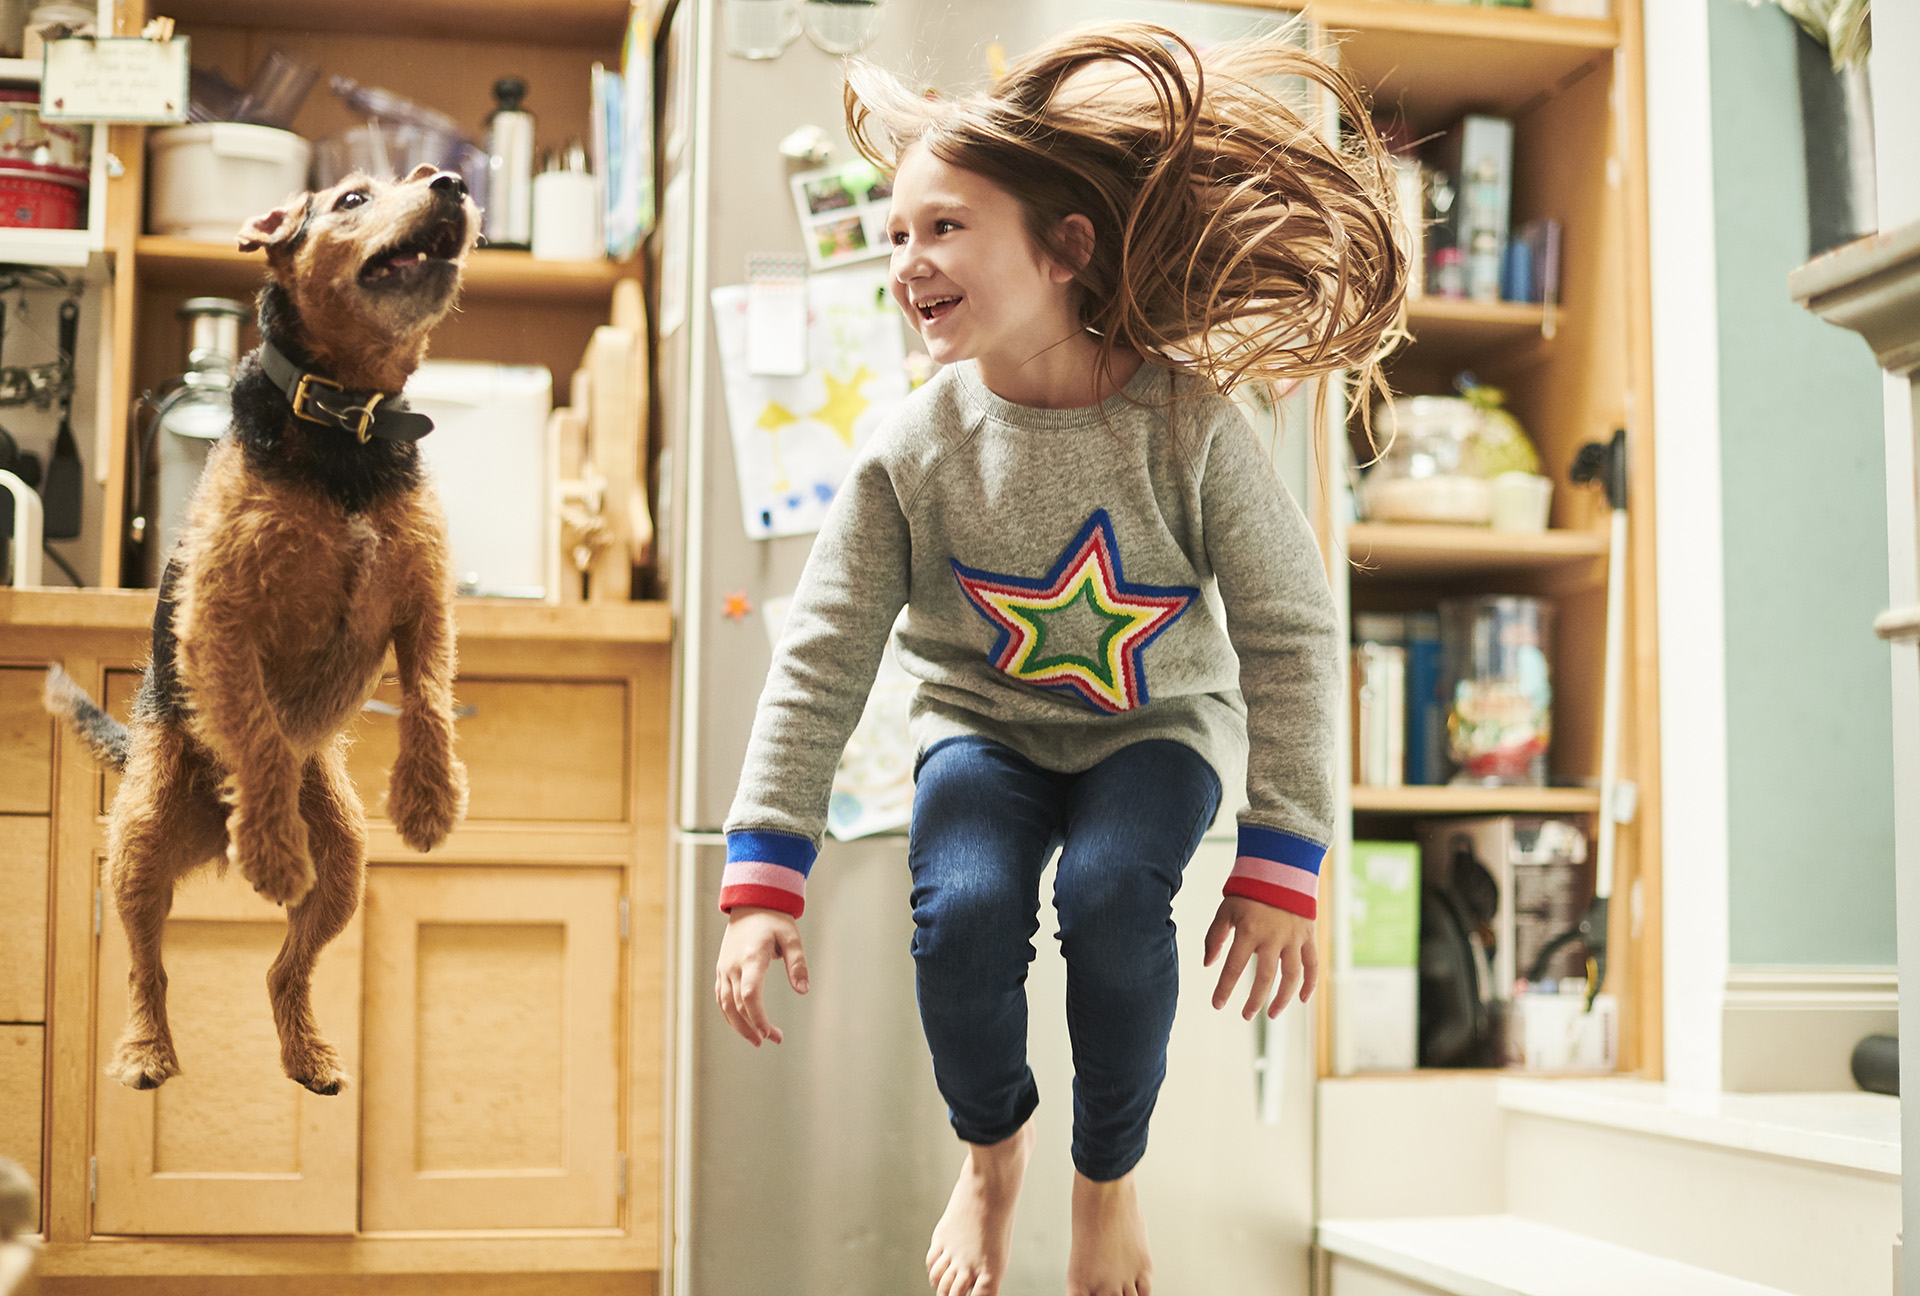 A young girl and her dog jumping in their kitchen